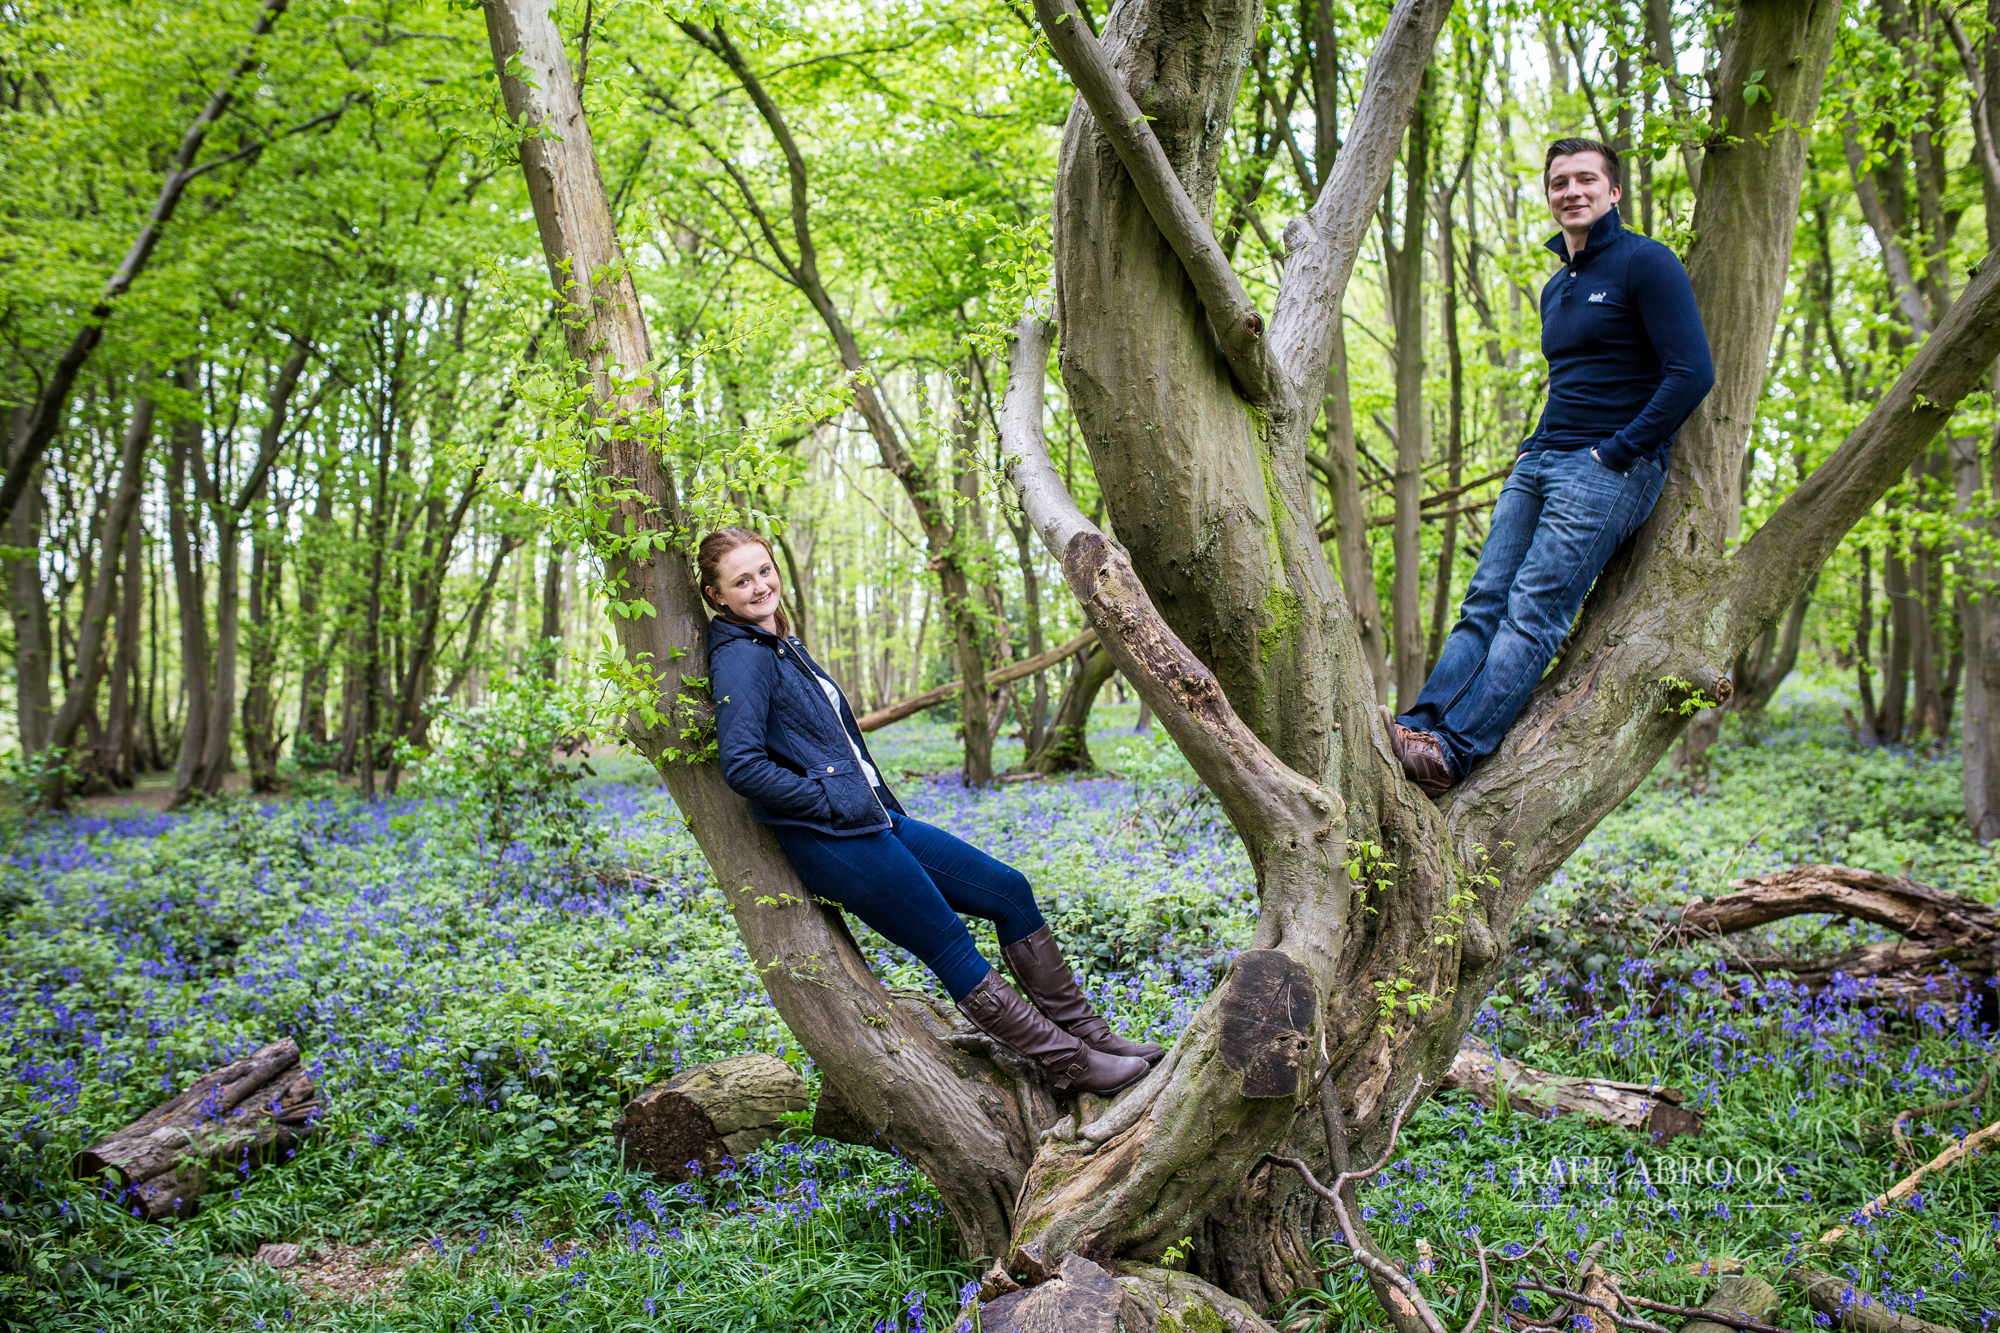 george & amelia heartwood forest st albans hertfordshire engagement shoot-1040.jpg